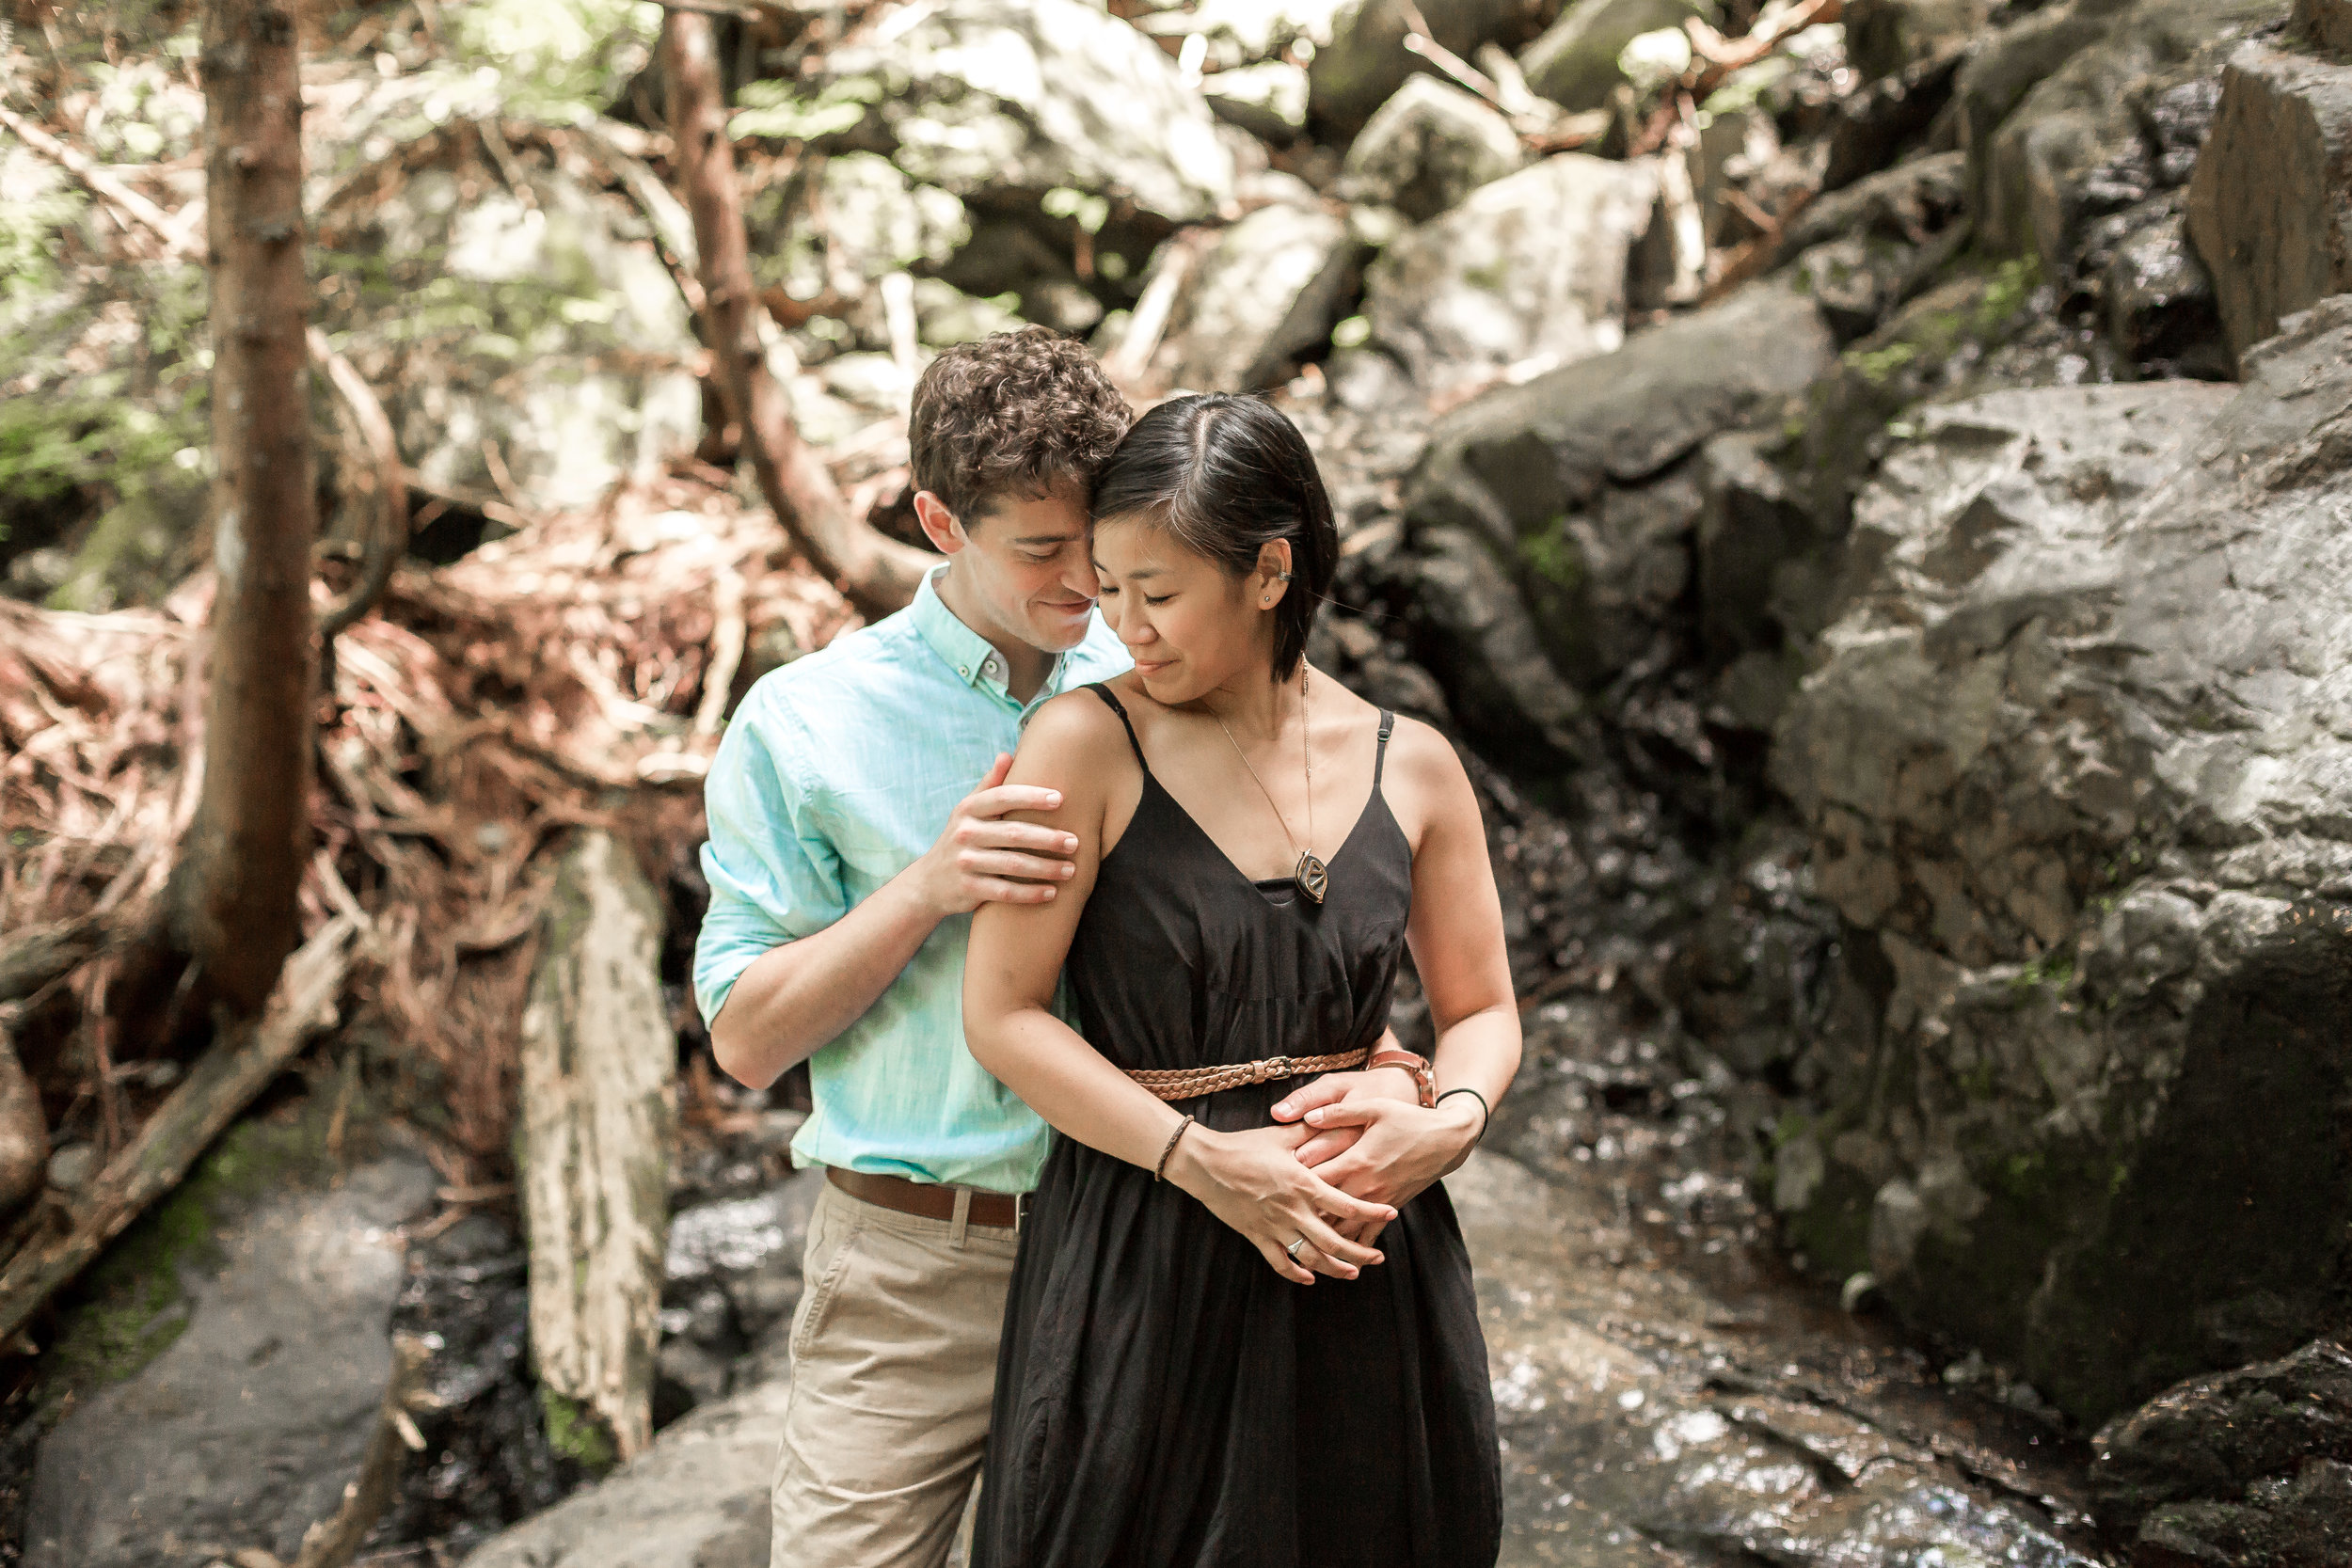 nicole-daacke-photography-hiking-engagement-session-in-snoqualmie-pass-washington-wedding-photographer-seattle-elopement-photography-adventurous-hiking-photos-heather-lake-washington-trails-29.jpg